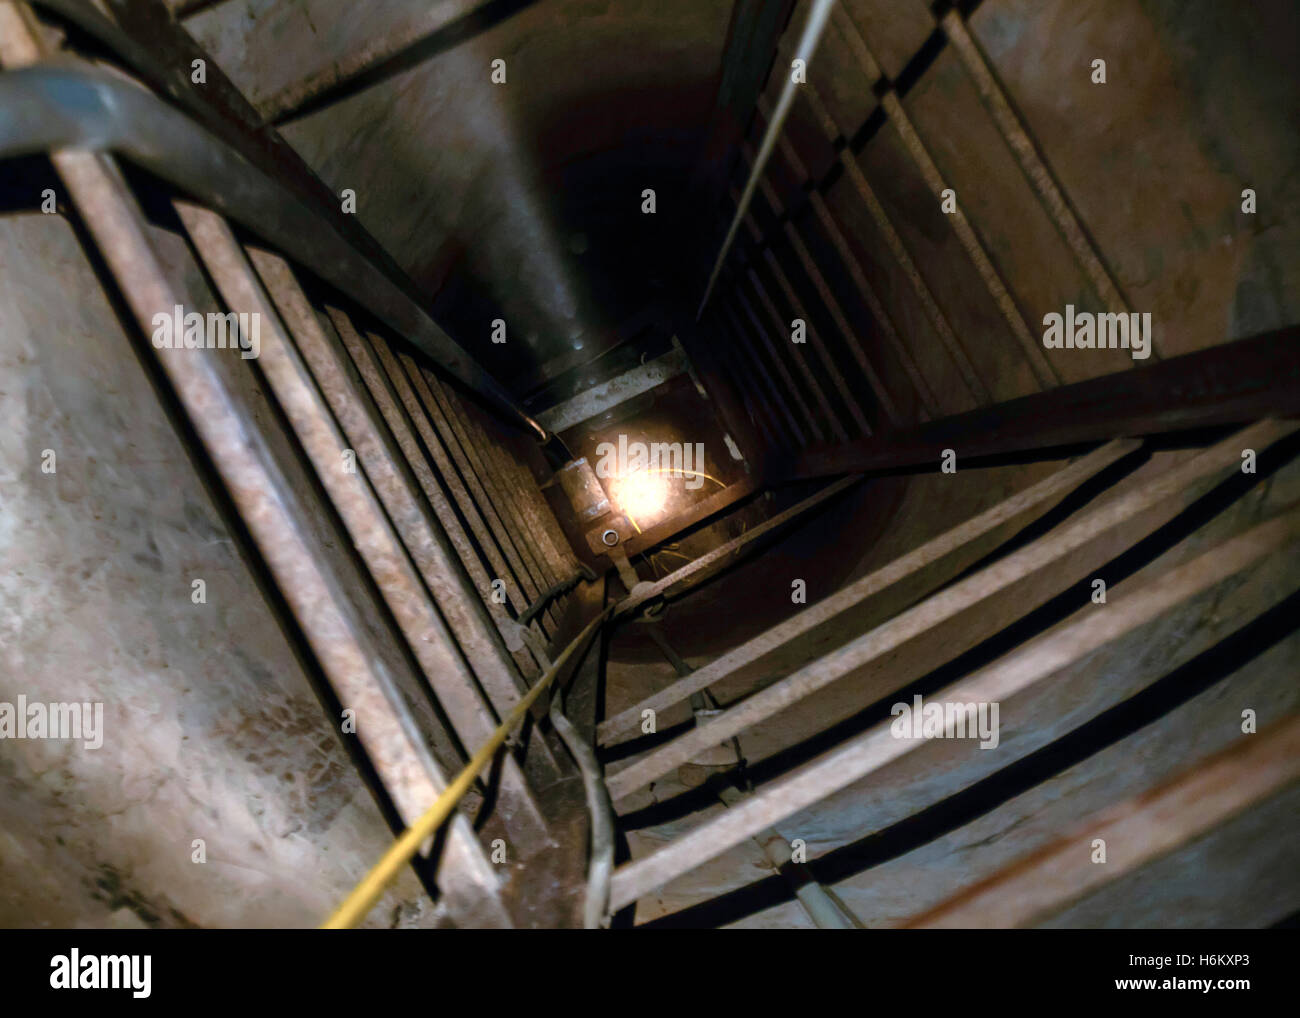 Entrance to a tunnel used for drug and human smuggling across the US Mexico border discovered at Nogales, Arizona - Stock Image